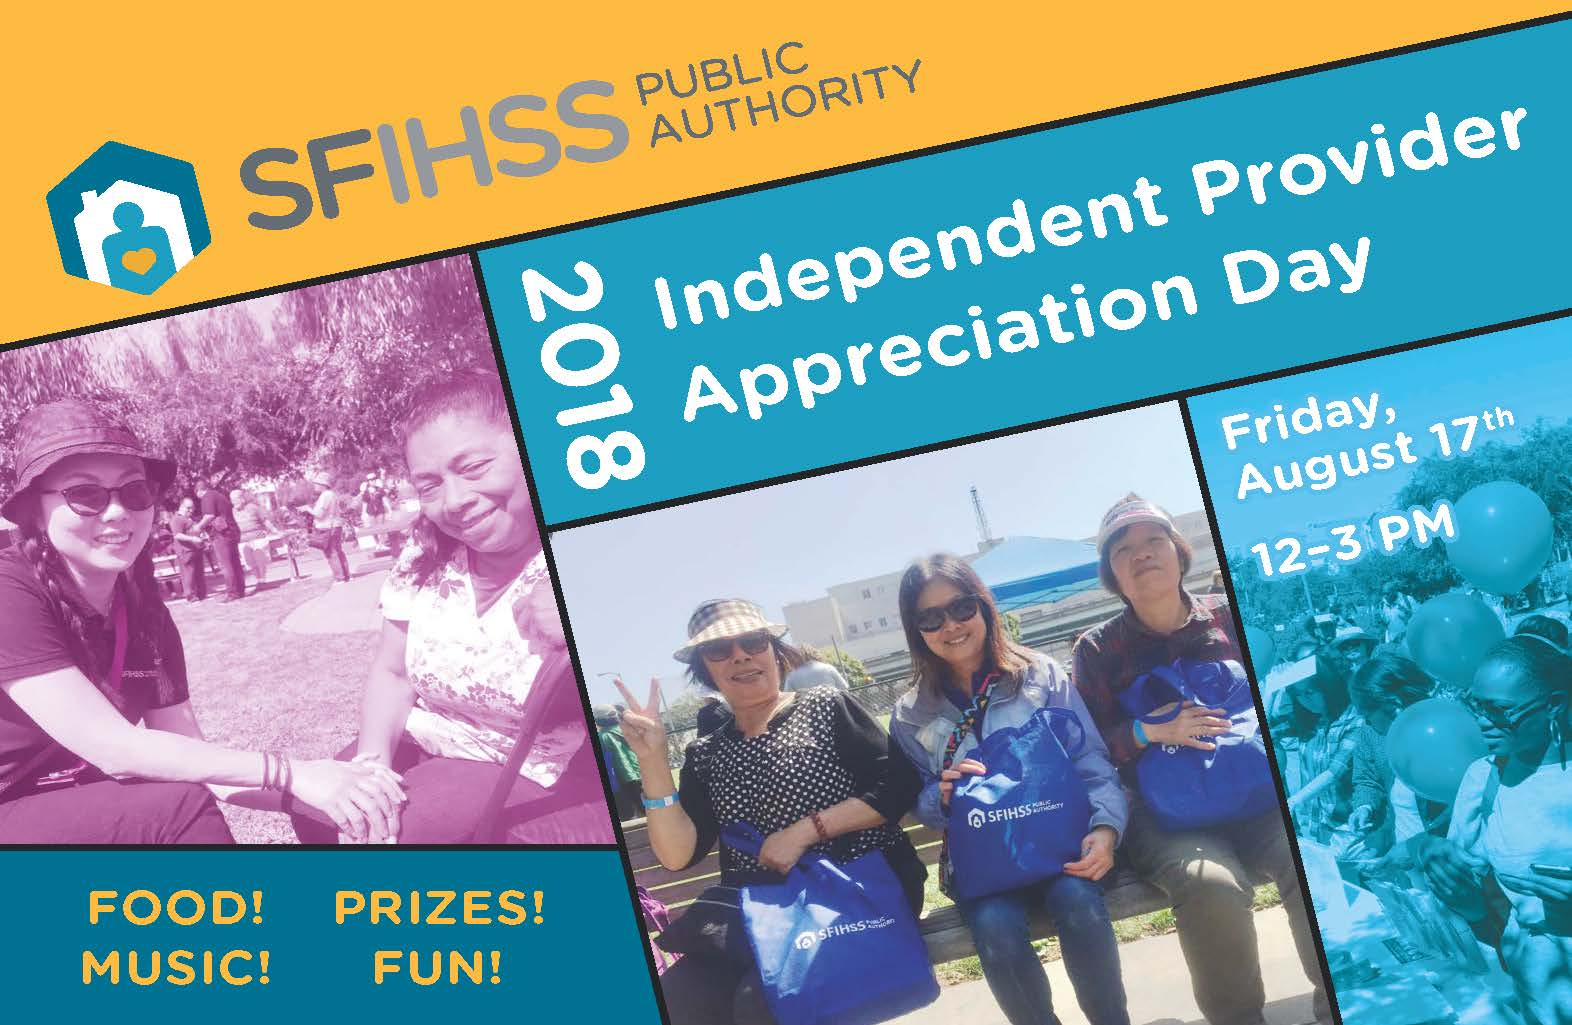 2nd Annual Independent Provider Appreciation Day